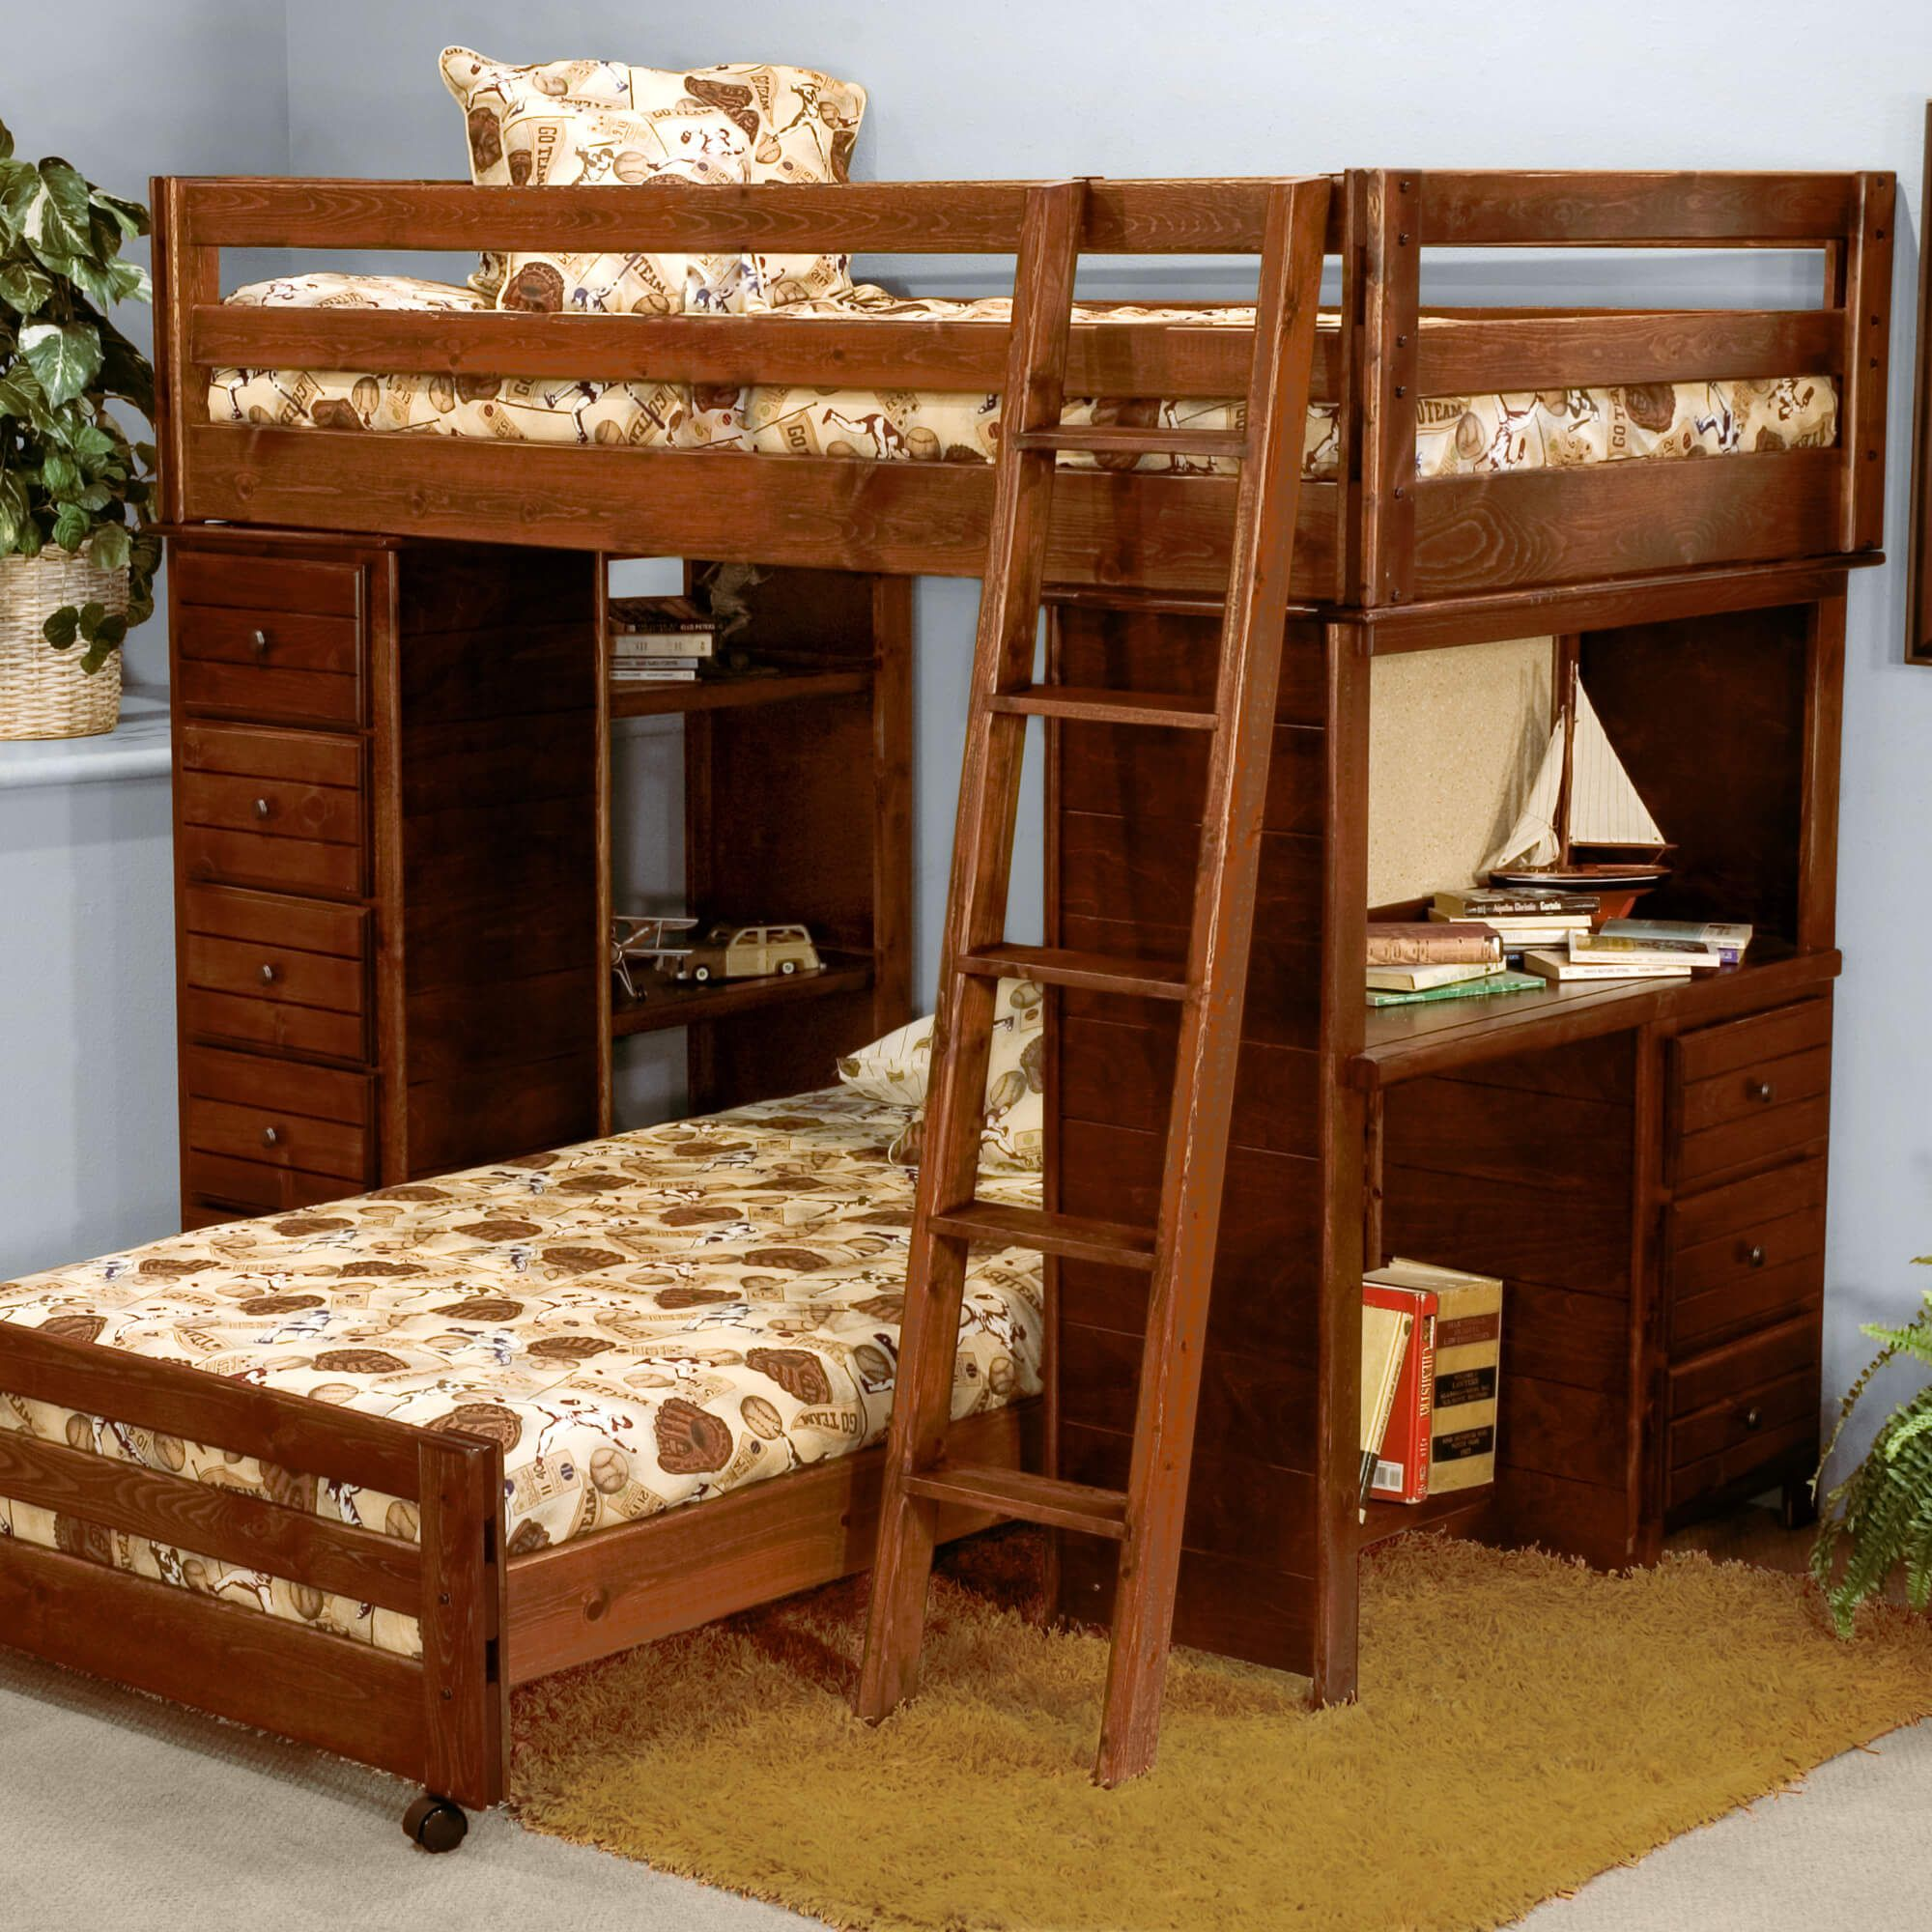 5e821b91ef05 25 Interesting L Shaped Bunk Beds Design Ideas You ll Love - ThefischerHouse